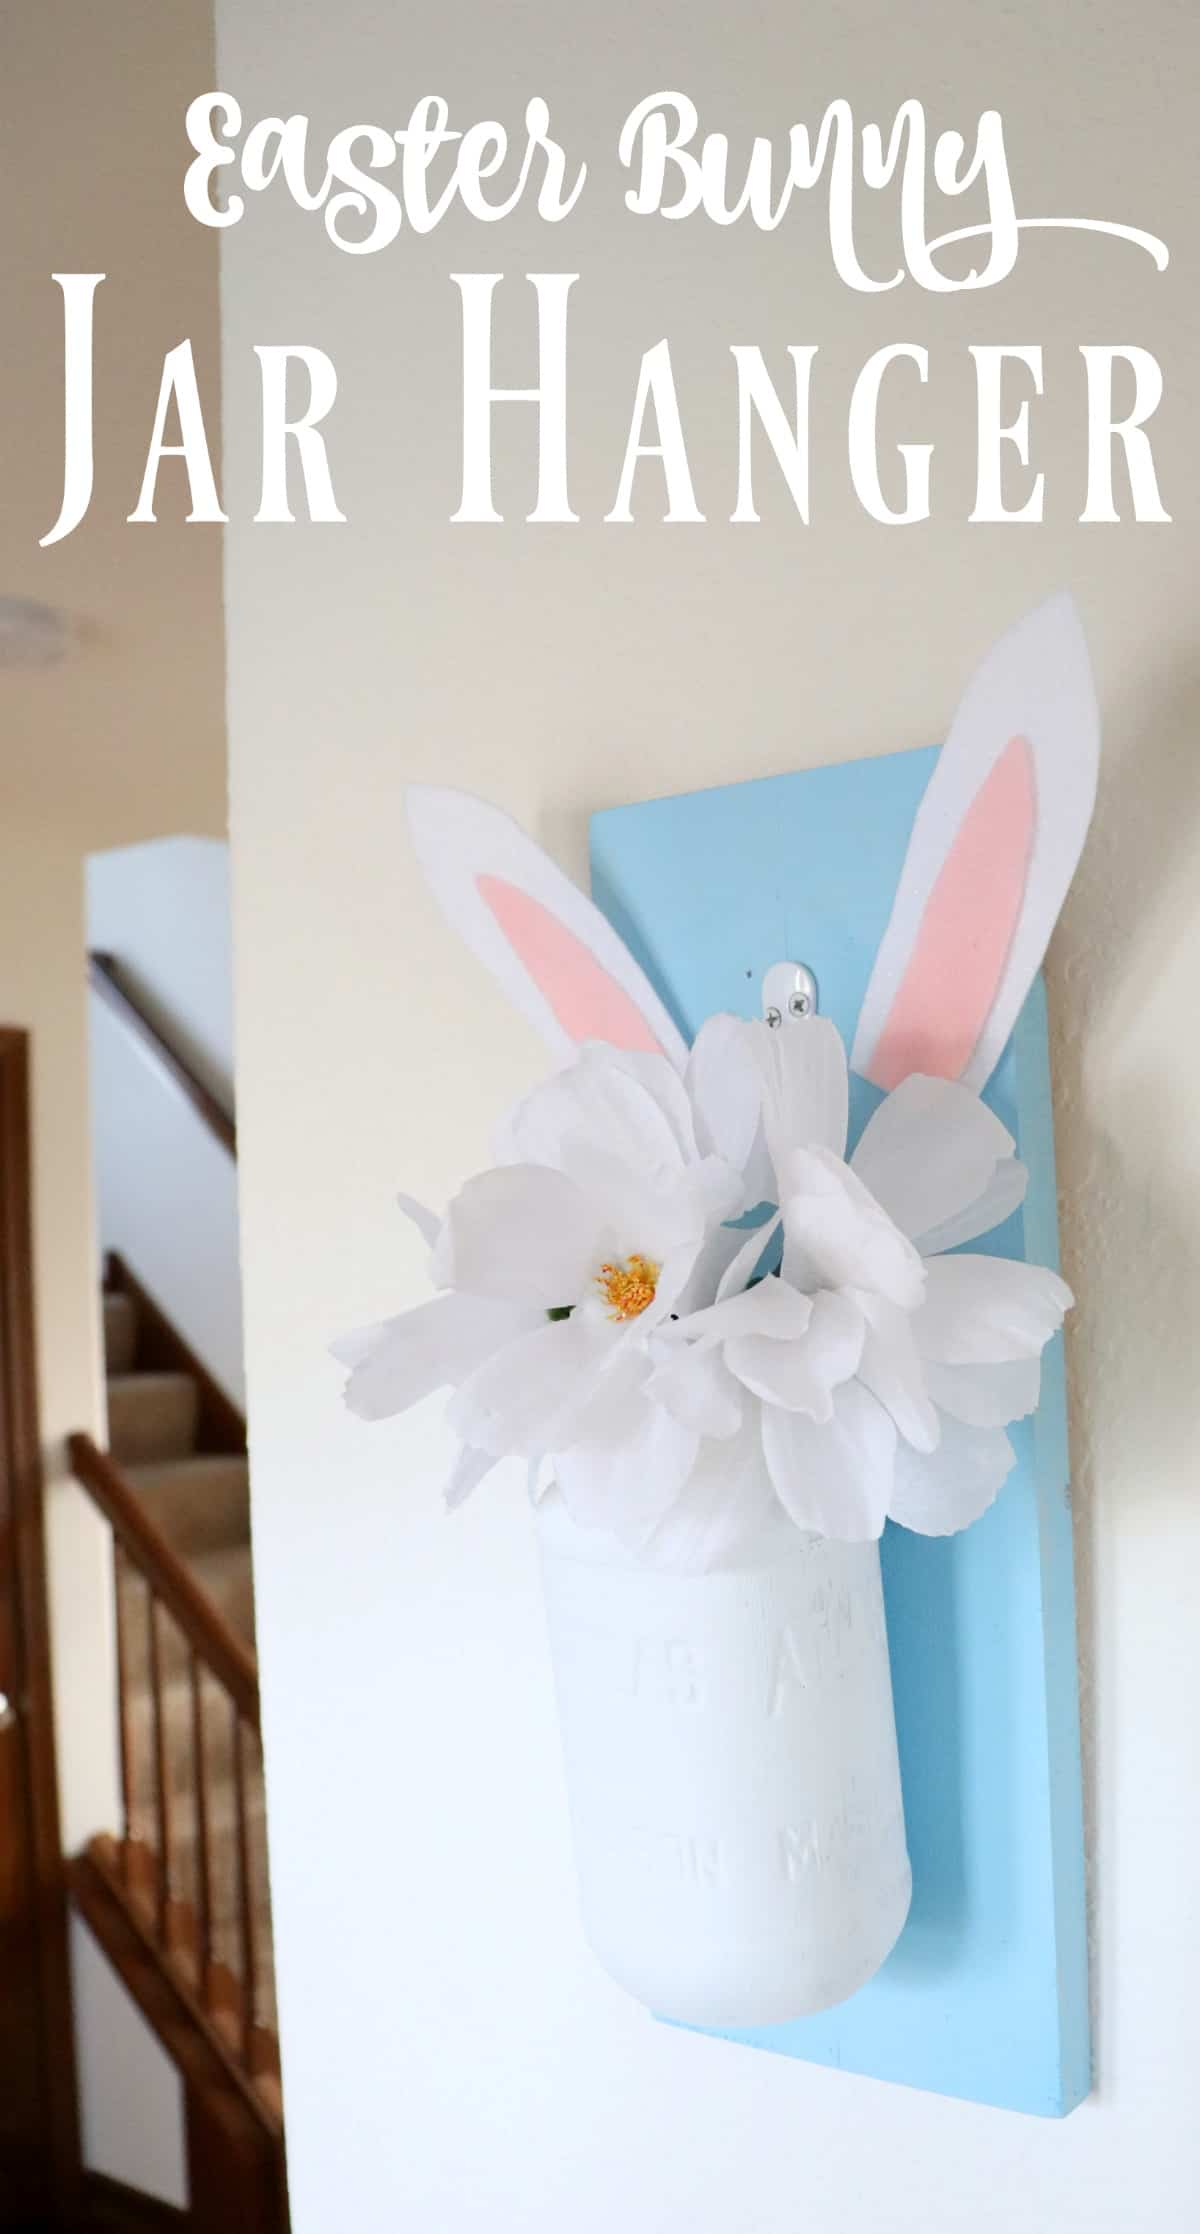 Make an Easter jar hanger with bunny ears filled with flowers